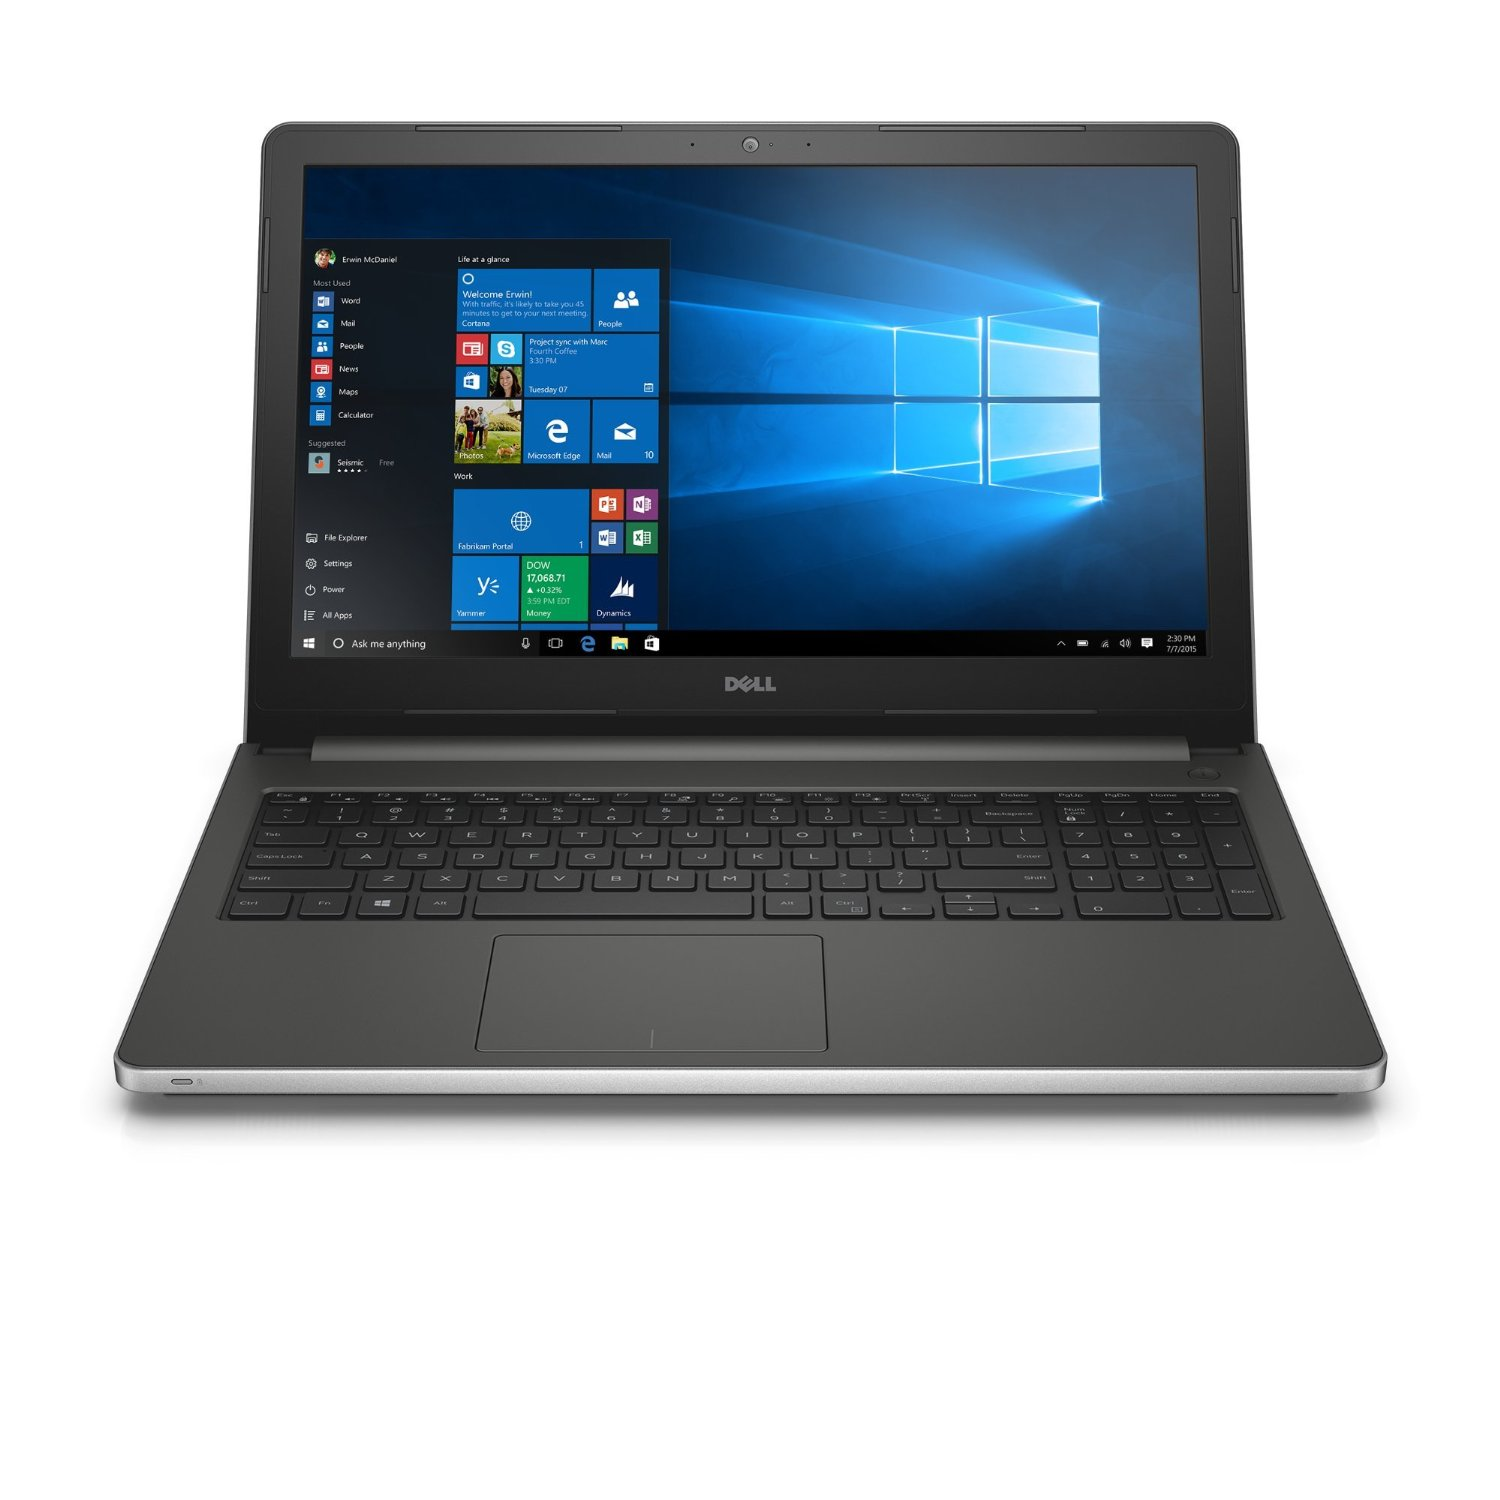 Dell Inspiron 15 5559 6th Gen Core i5 Notebook Windows large 1